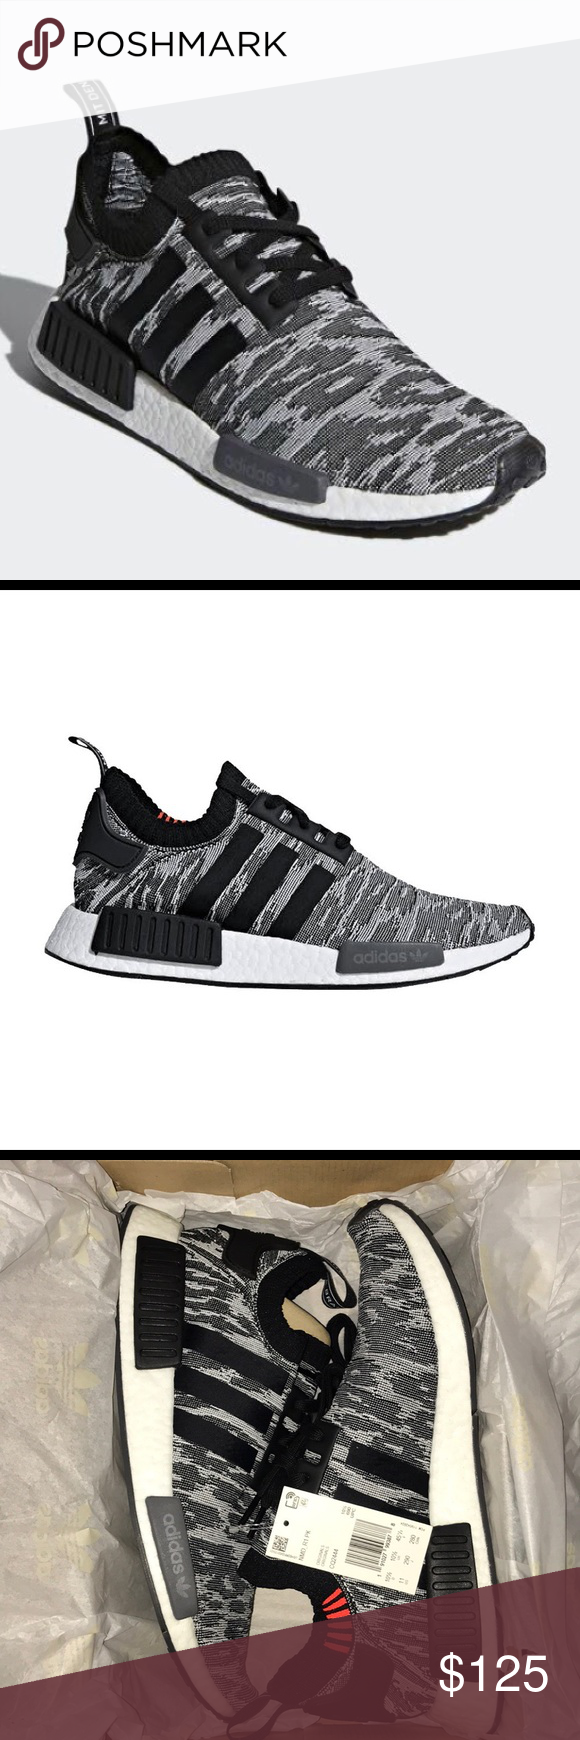 best sneakers ec1c9 2c9b3 Adidas NMD_R1 PK CQ2444 Born from an inspired past, made for ...